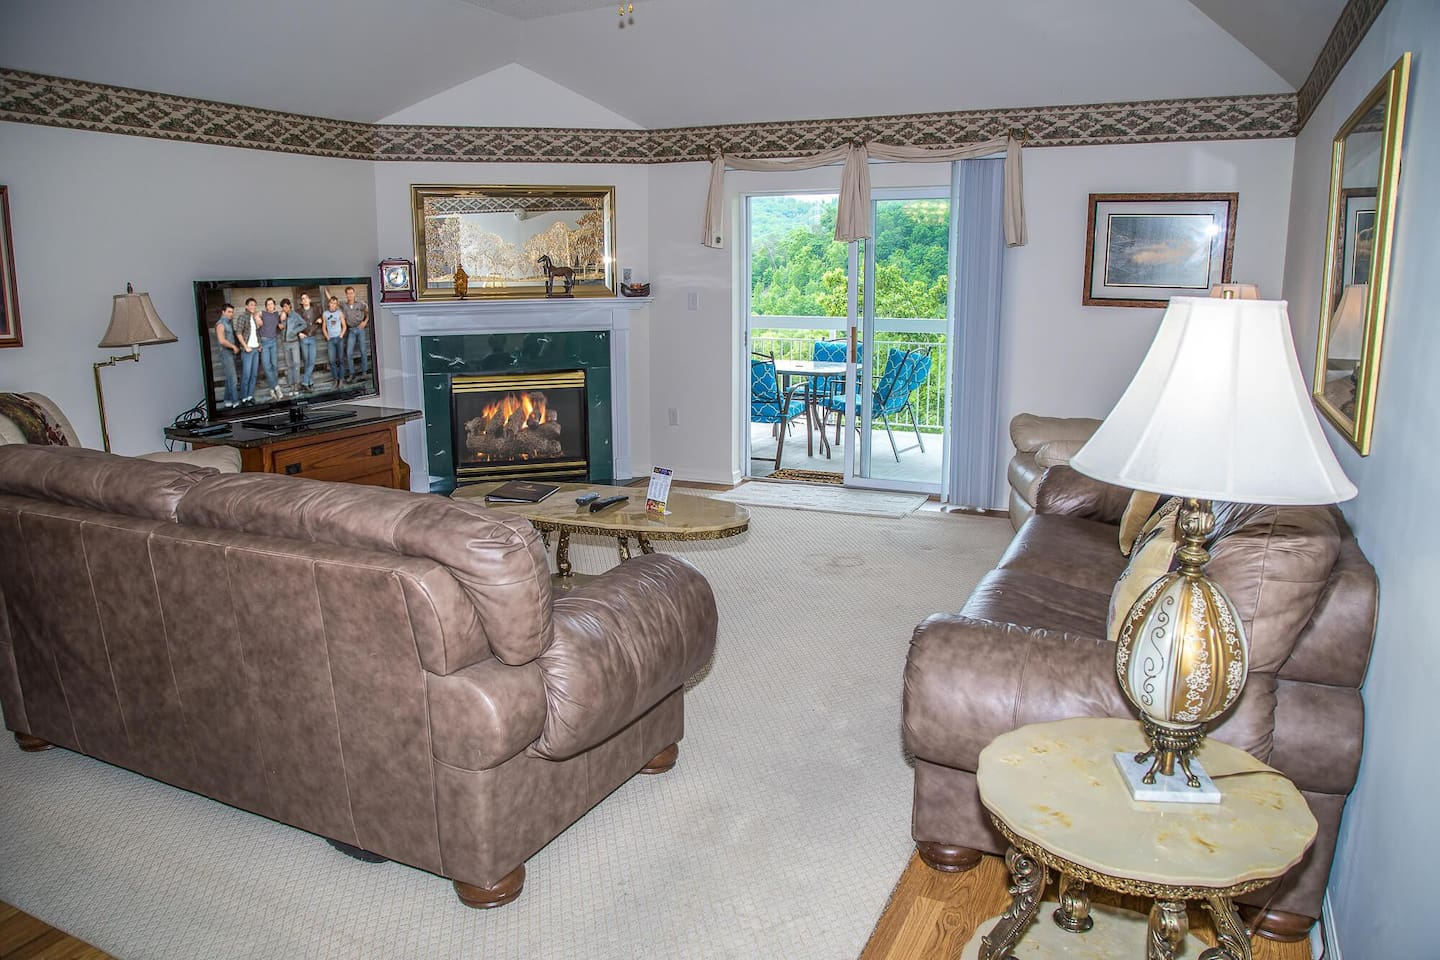 Unbeatable MTN View! King Beds, Jacuzzi, Full Kitchen, Indoor Pool, Fireplace